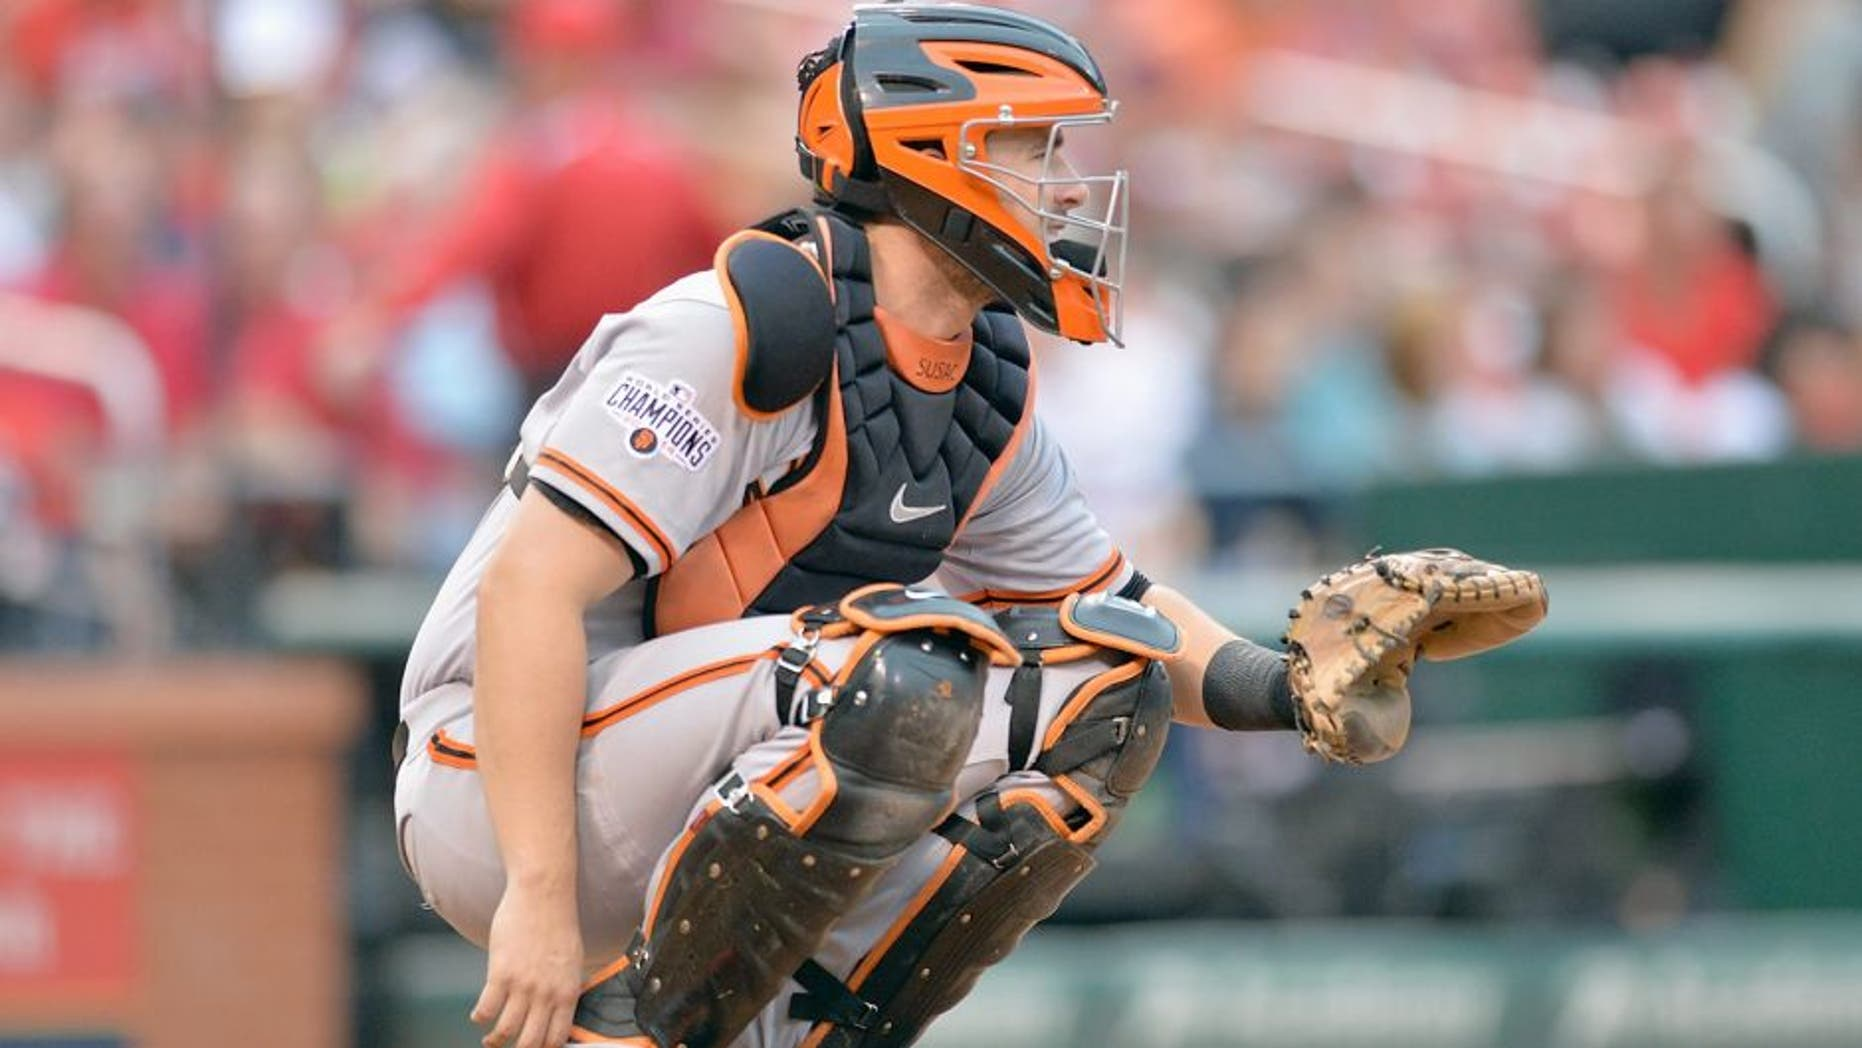 ST. LOUIS, MO - AUGUST 19: Andrew Susac #34 of the San Francisco Giants throws during a game against the St. Louis Cardinals at Busch Stadium on August 19, 2015 in St. Louis, Missouri. (Photo by Michael Thomas/Getty Images)